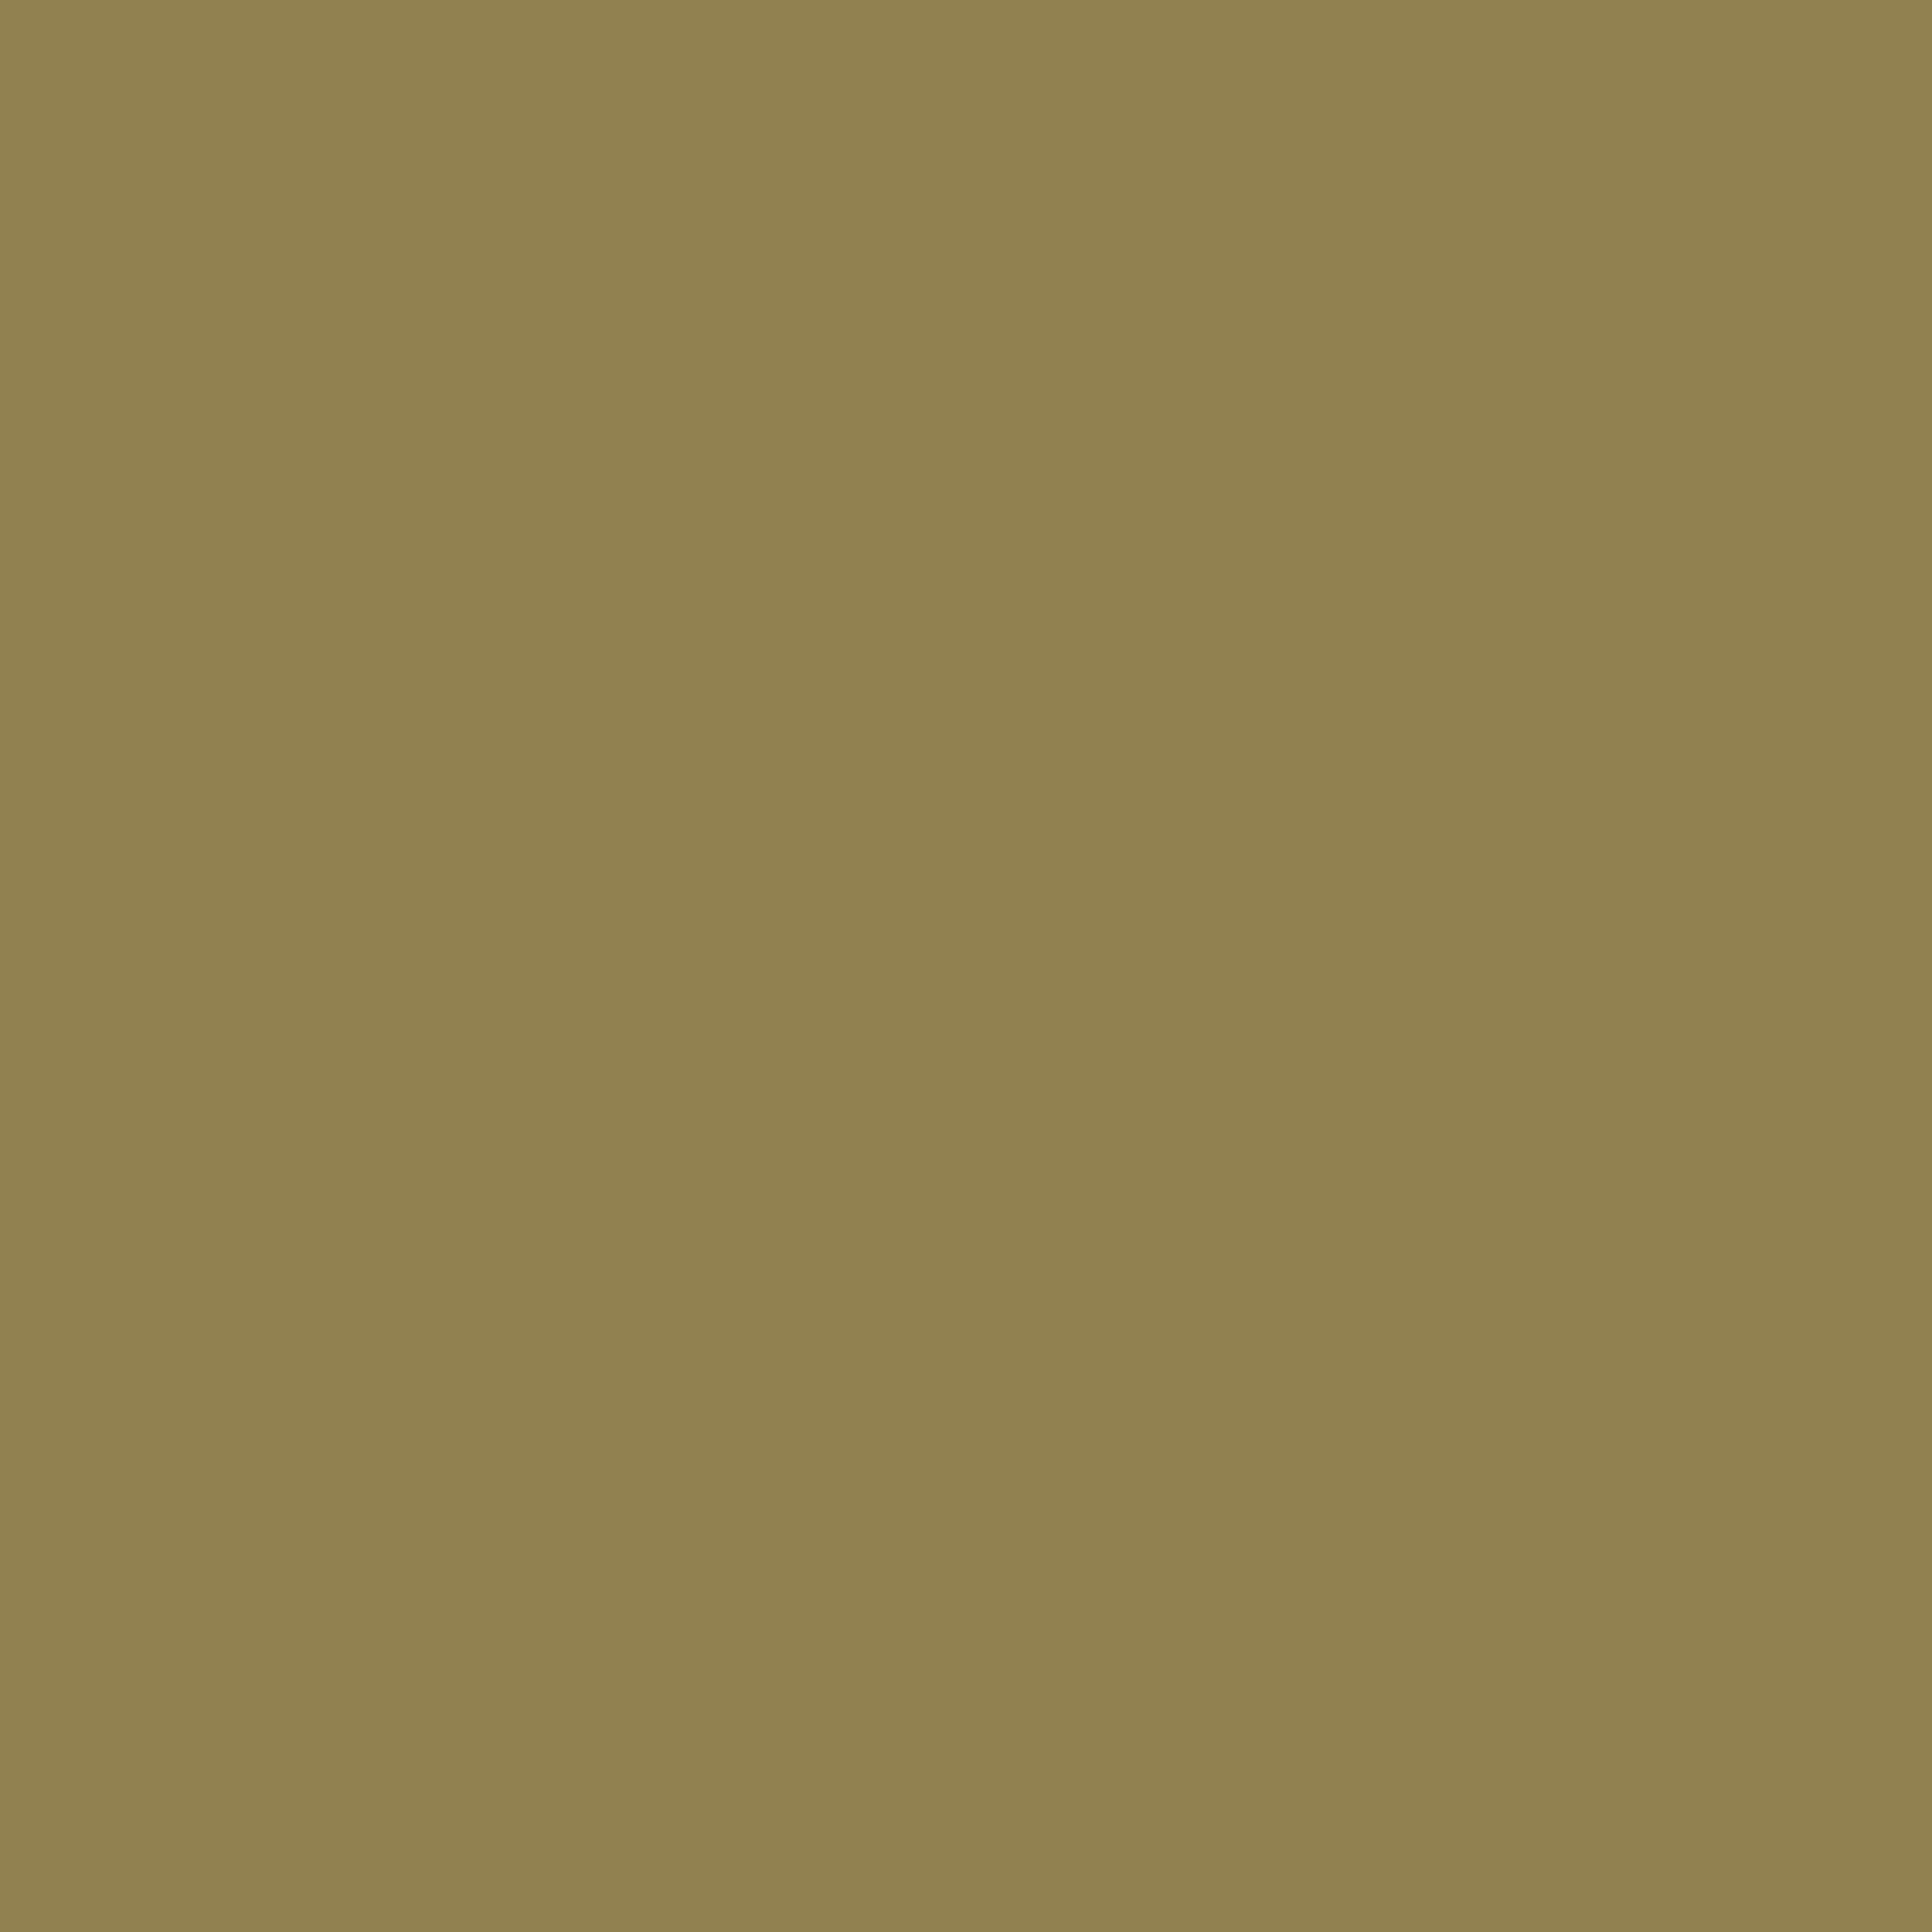 3600x3600 Dark Tan Solid Color Background